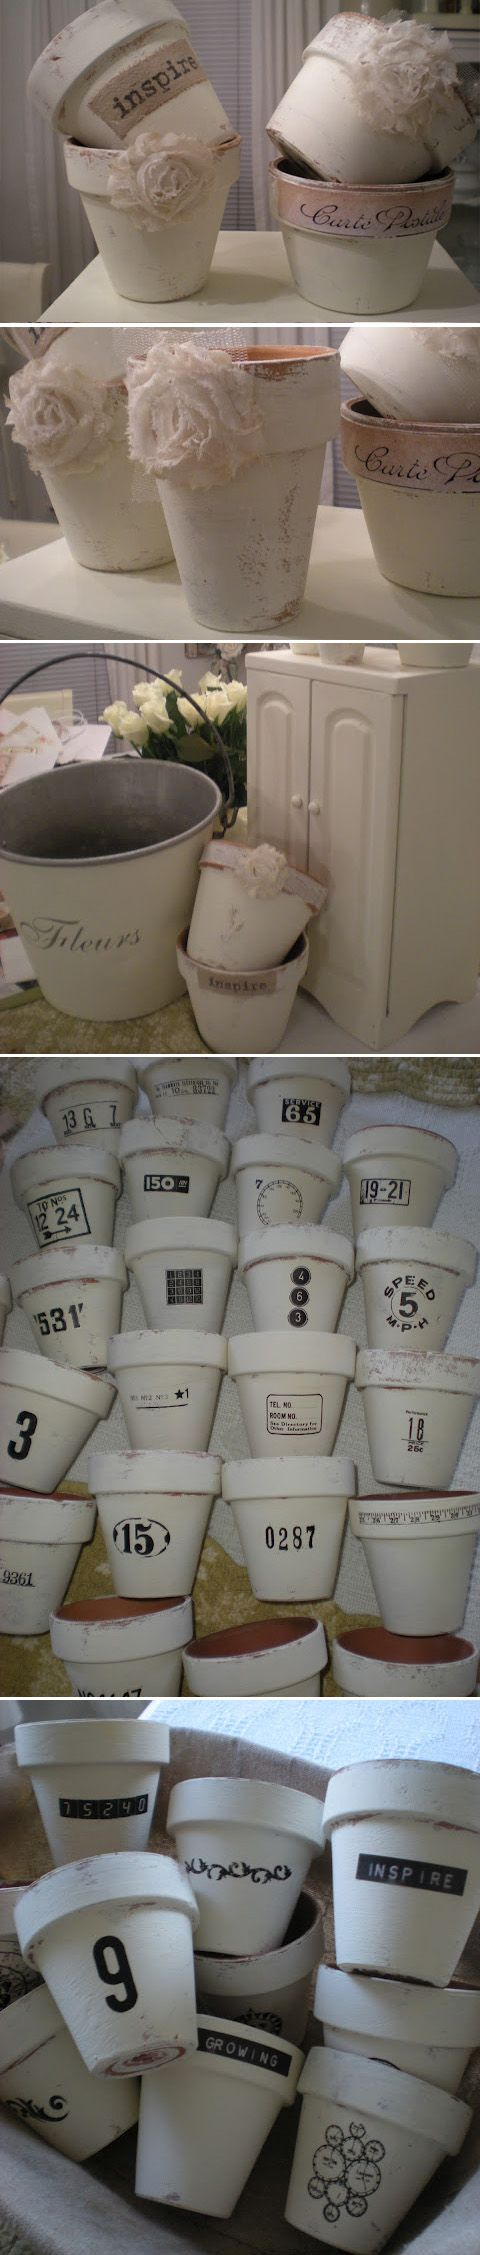 White Chalk Paint Terra Cotta Pots to Add Some Shabby Chic Style.